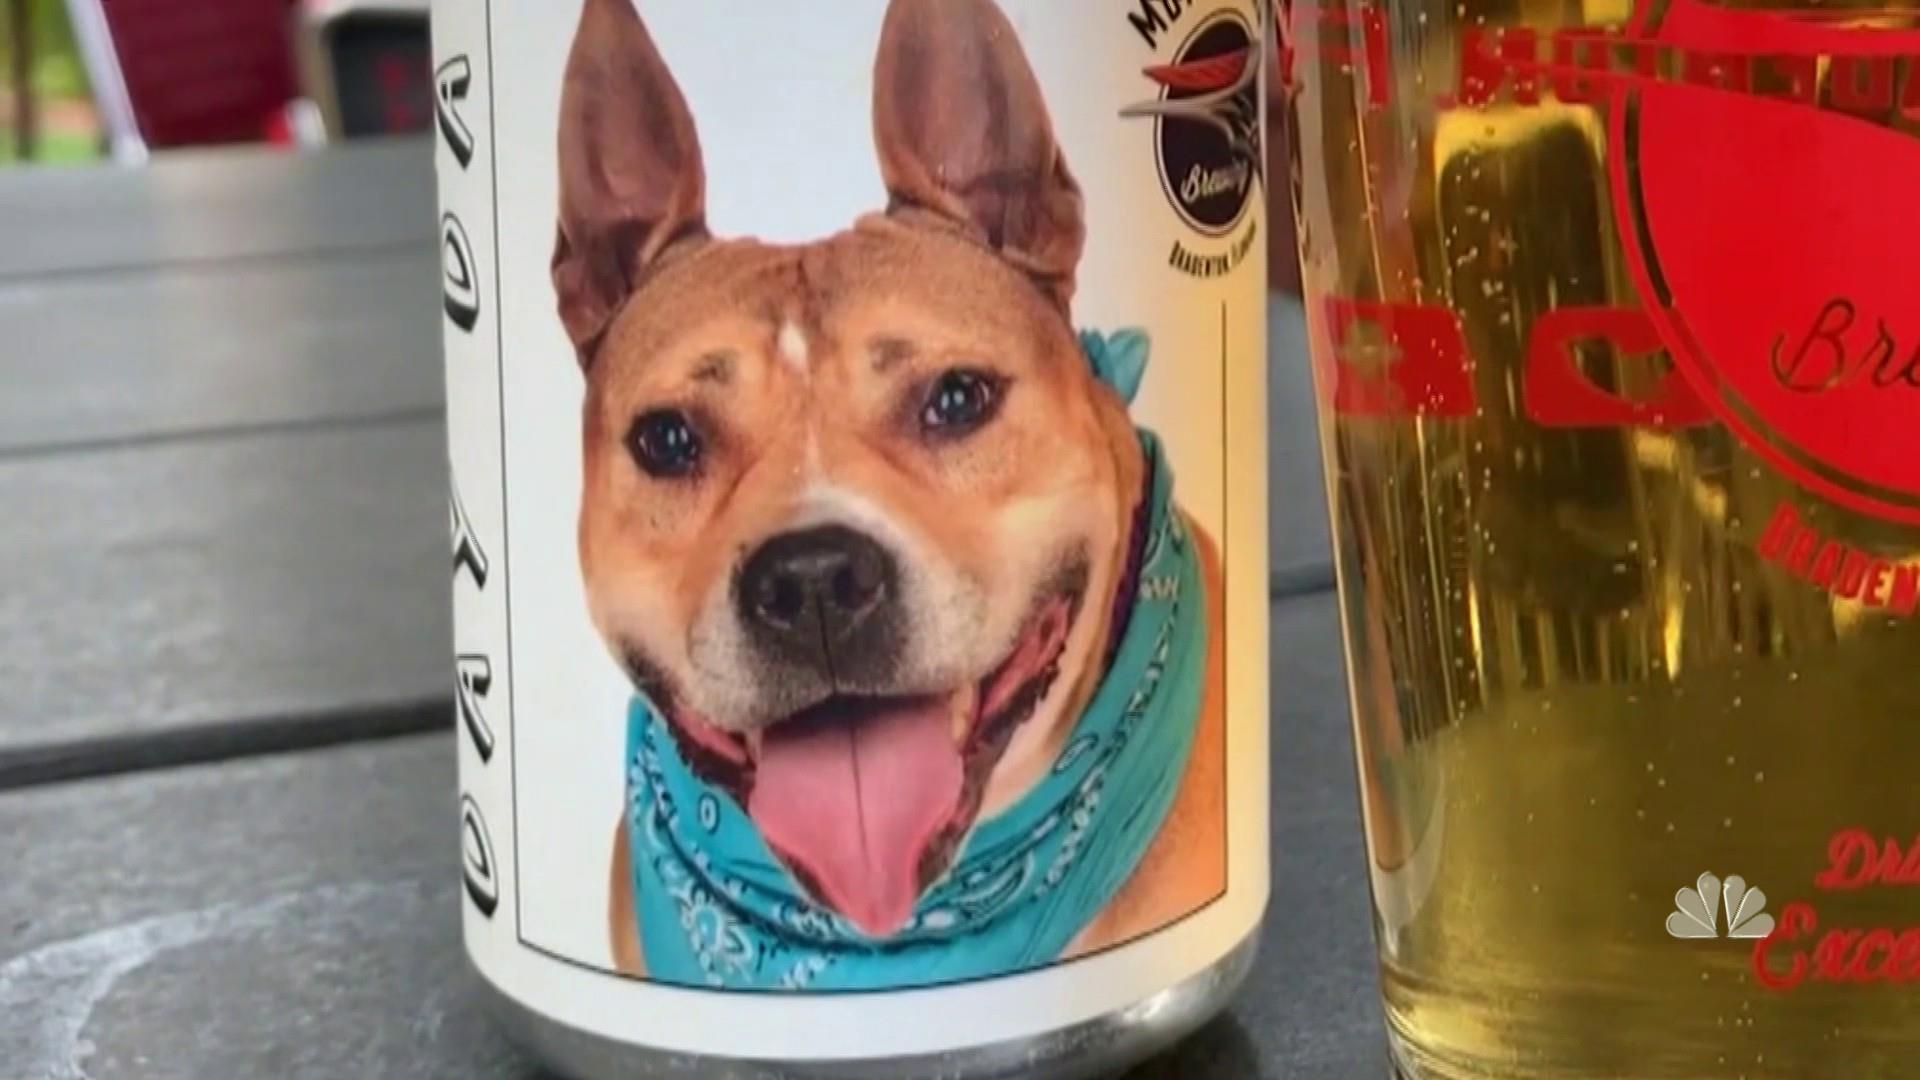 Beer can leads to Minnesota woman reuniting with missing dog